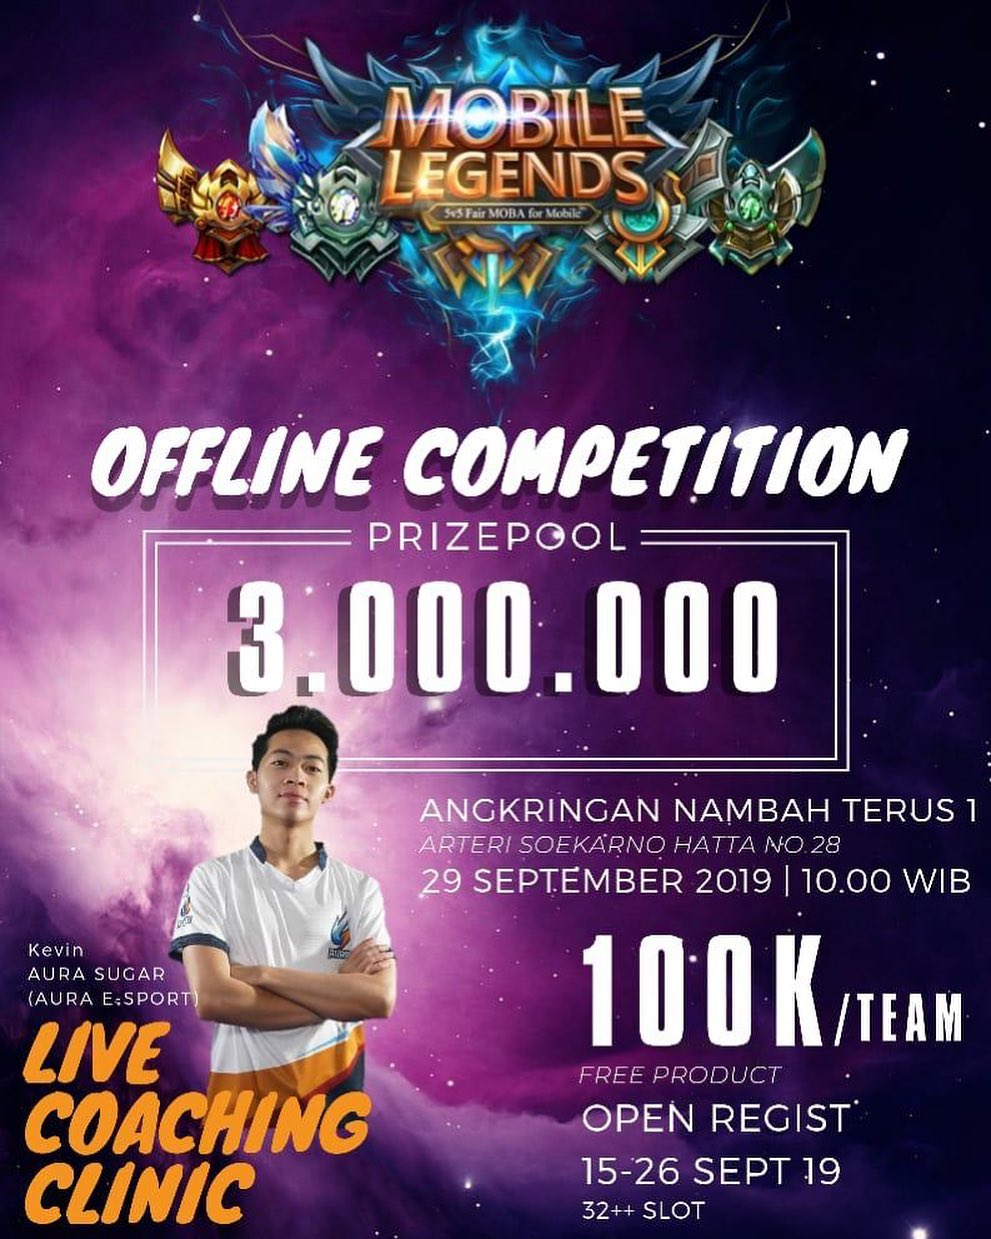 The Mobile Legends Offline Competition